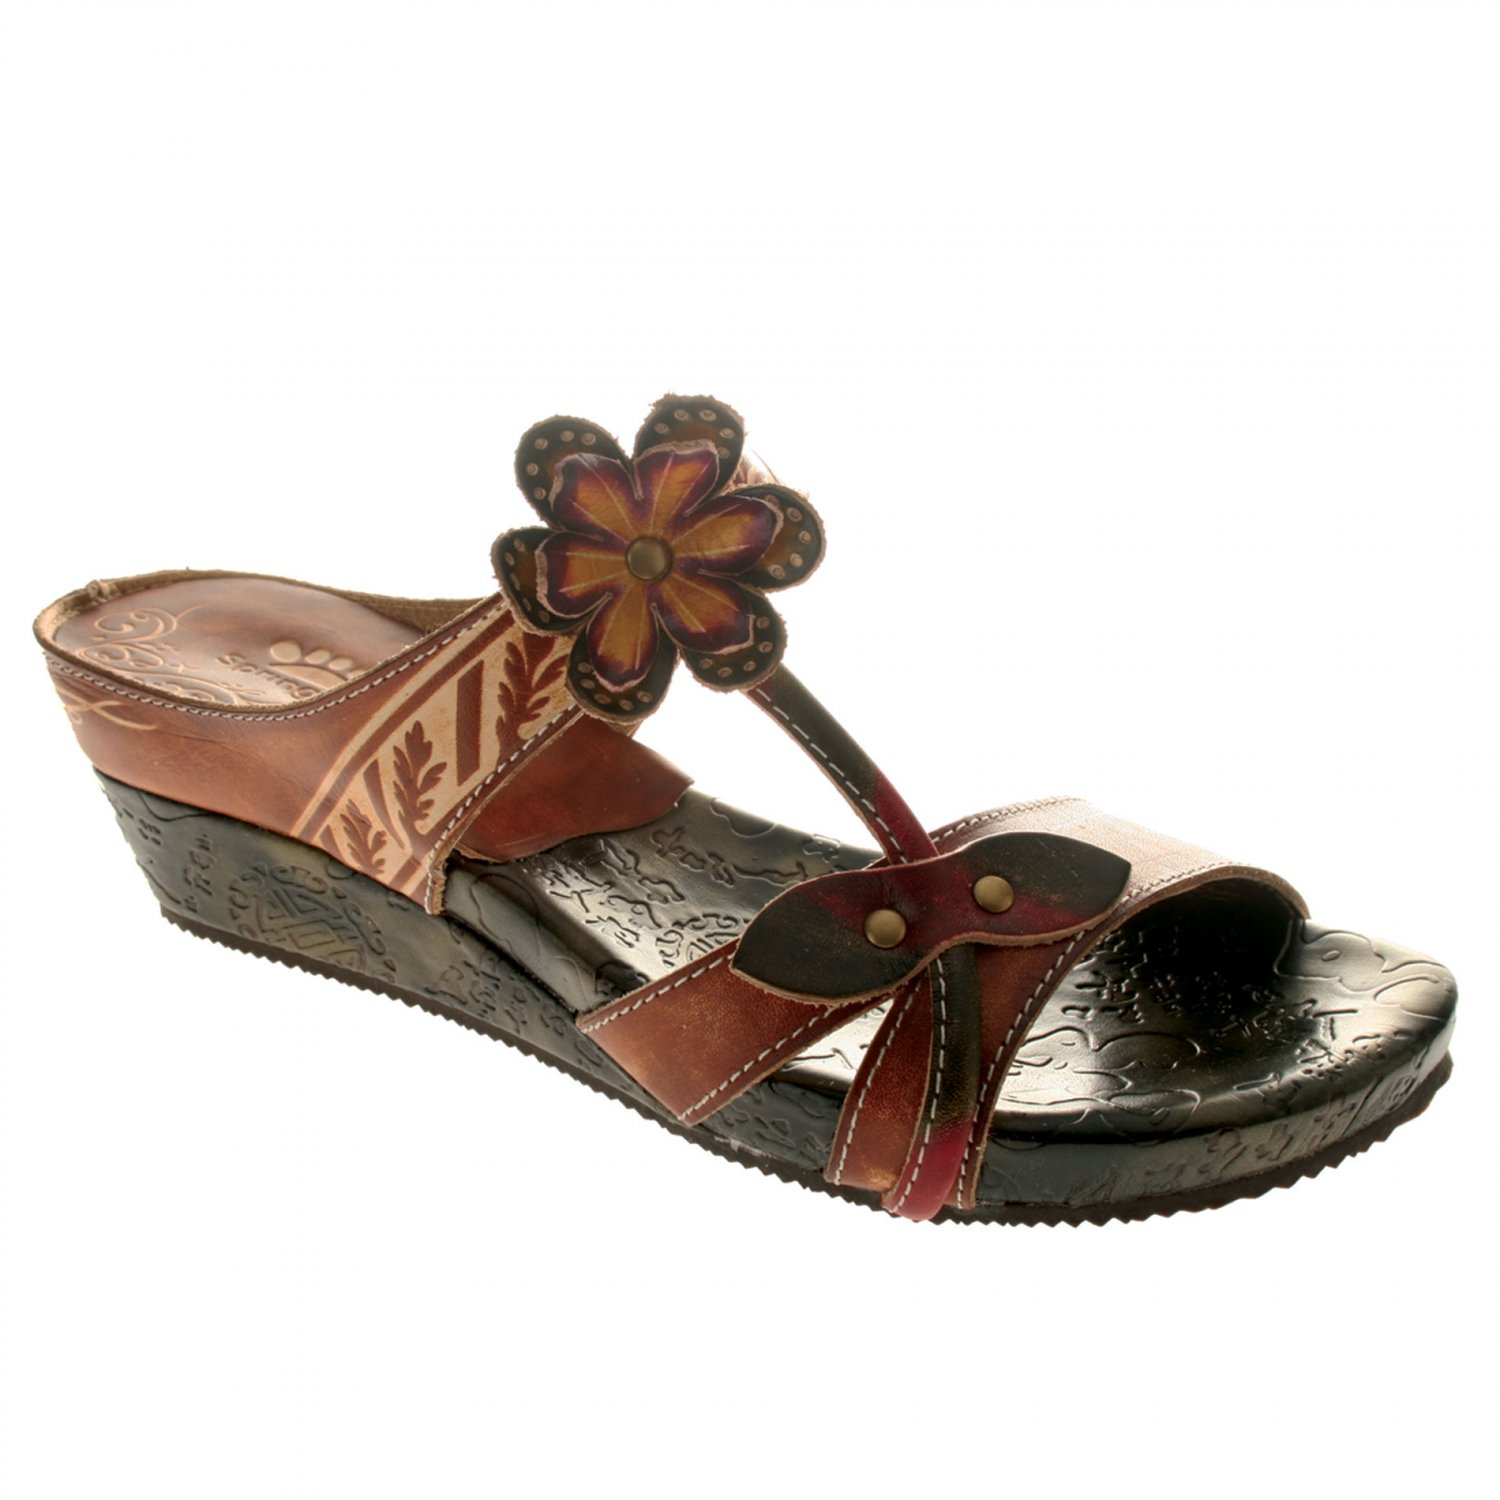 Spring Step TROPIC Sandals Shoes All Sizes & Colors $6